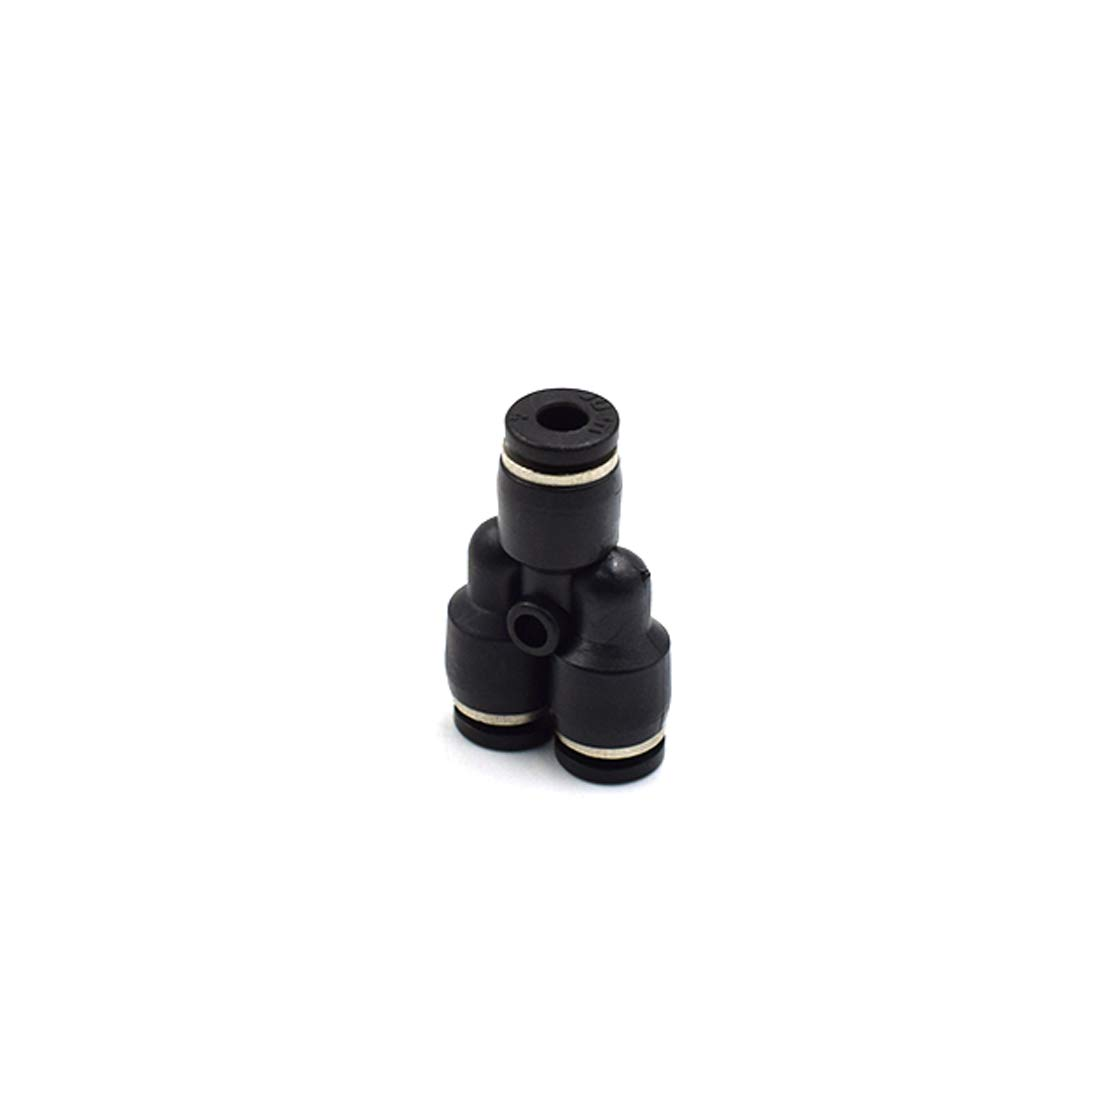 OD Push to Connect Air Fittings Push to Connect Fittings Tube Connect Y Splitter Plastck Black LICTOP 5//32 inch 5 Pack 4mm